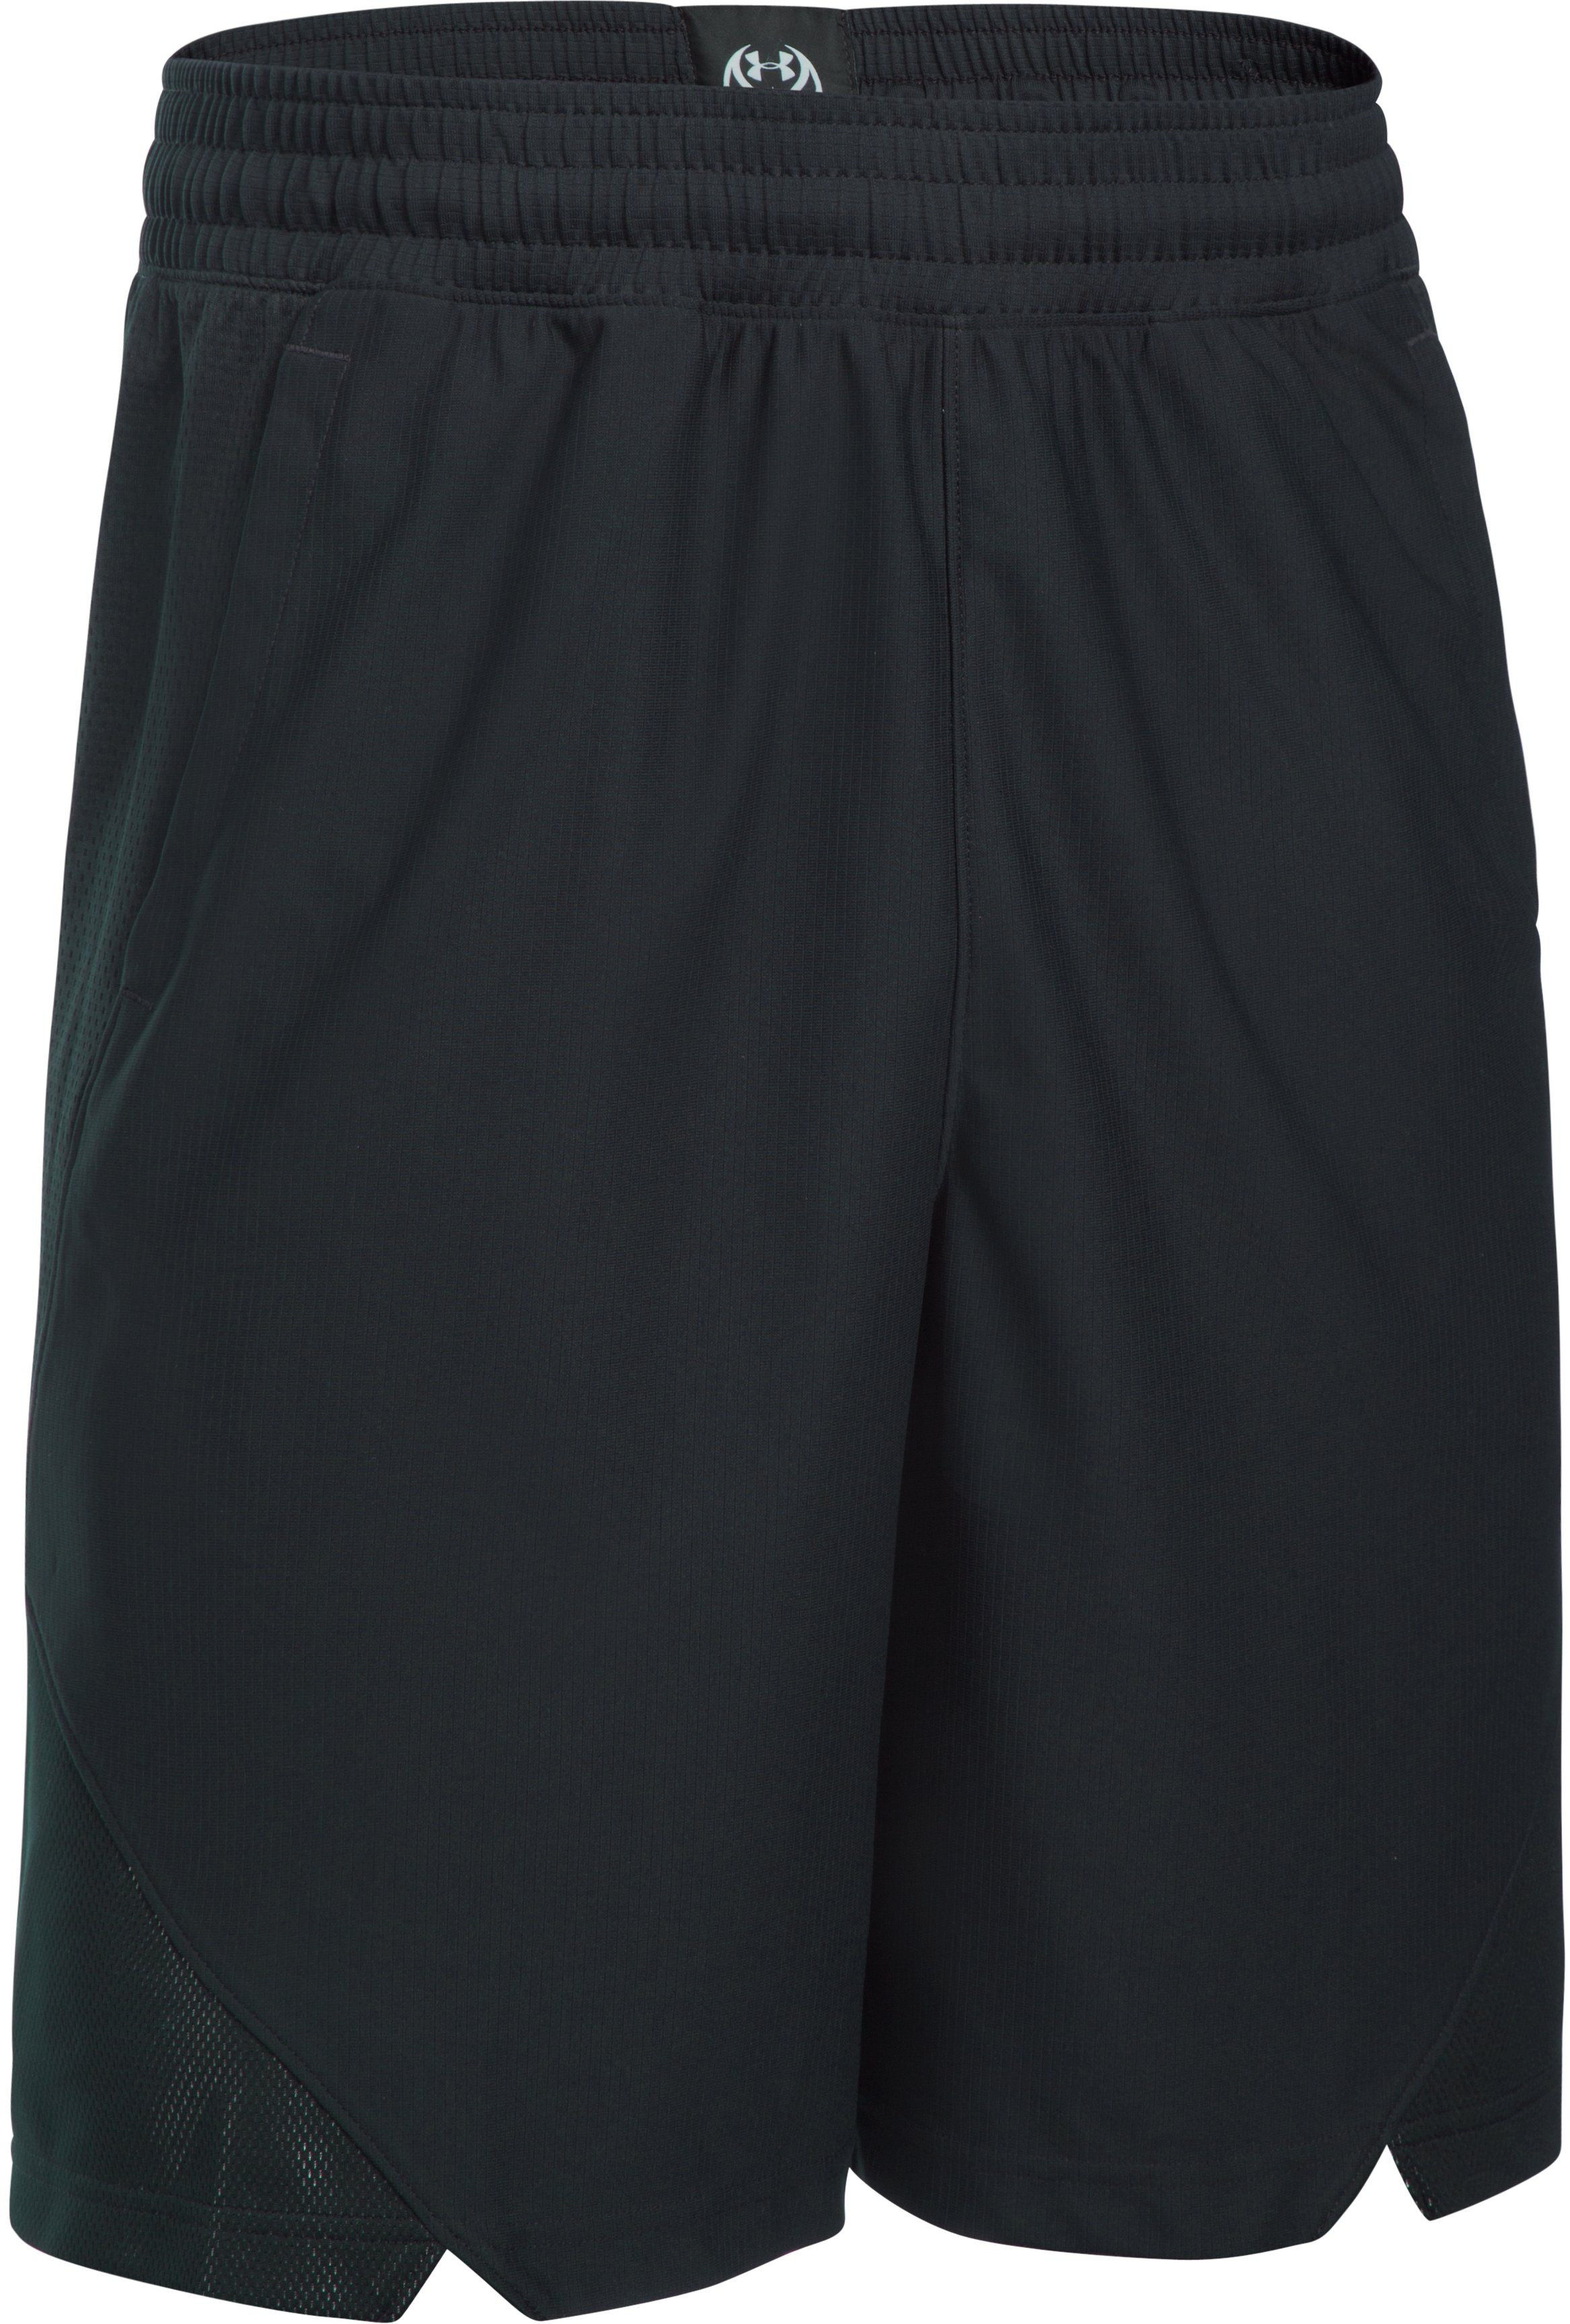 Men's UA Select Drive Shorts, Black , undefined